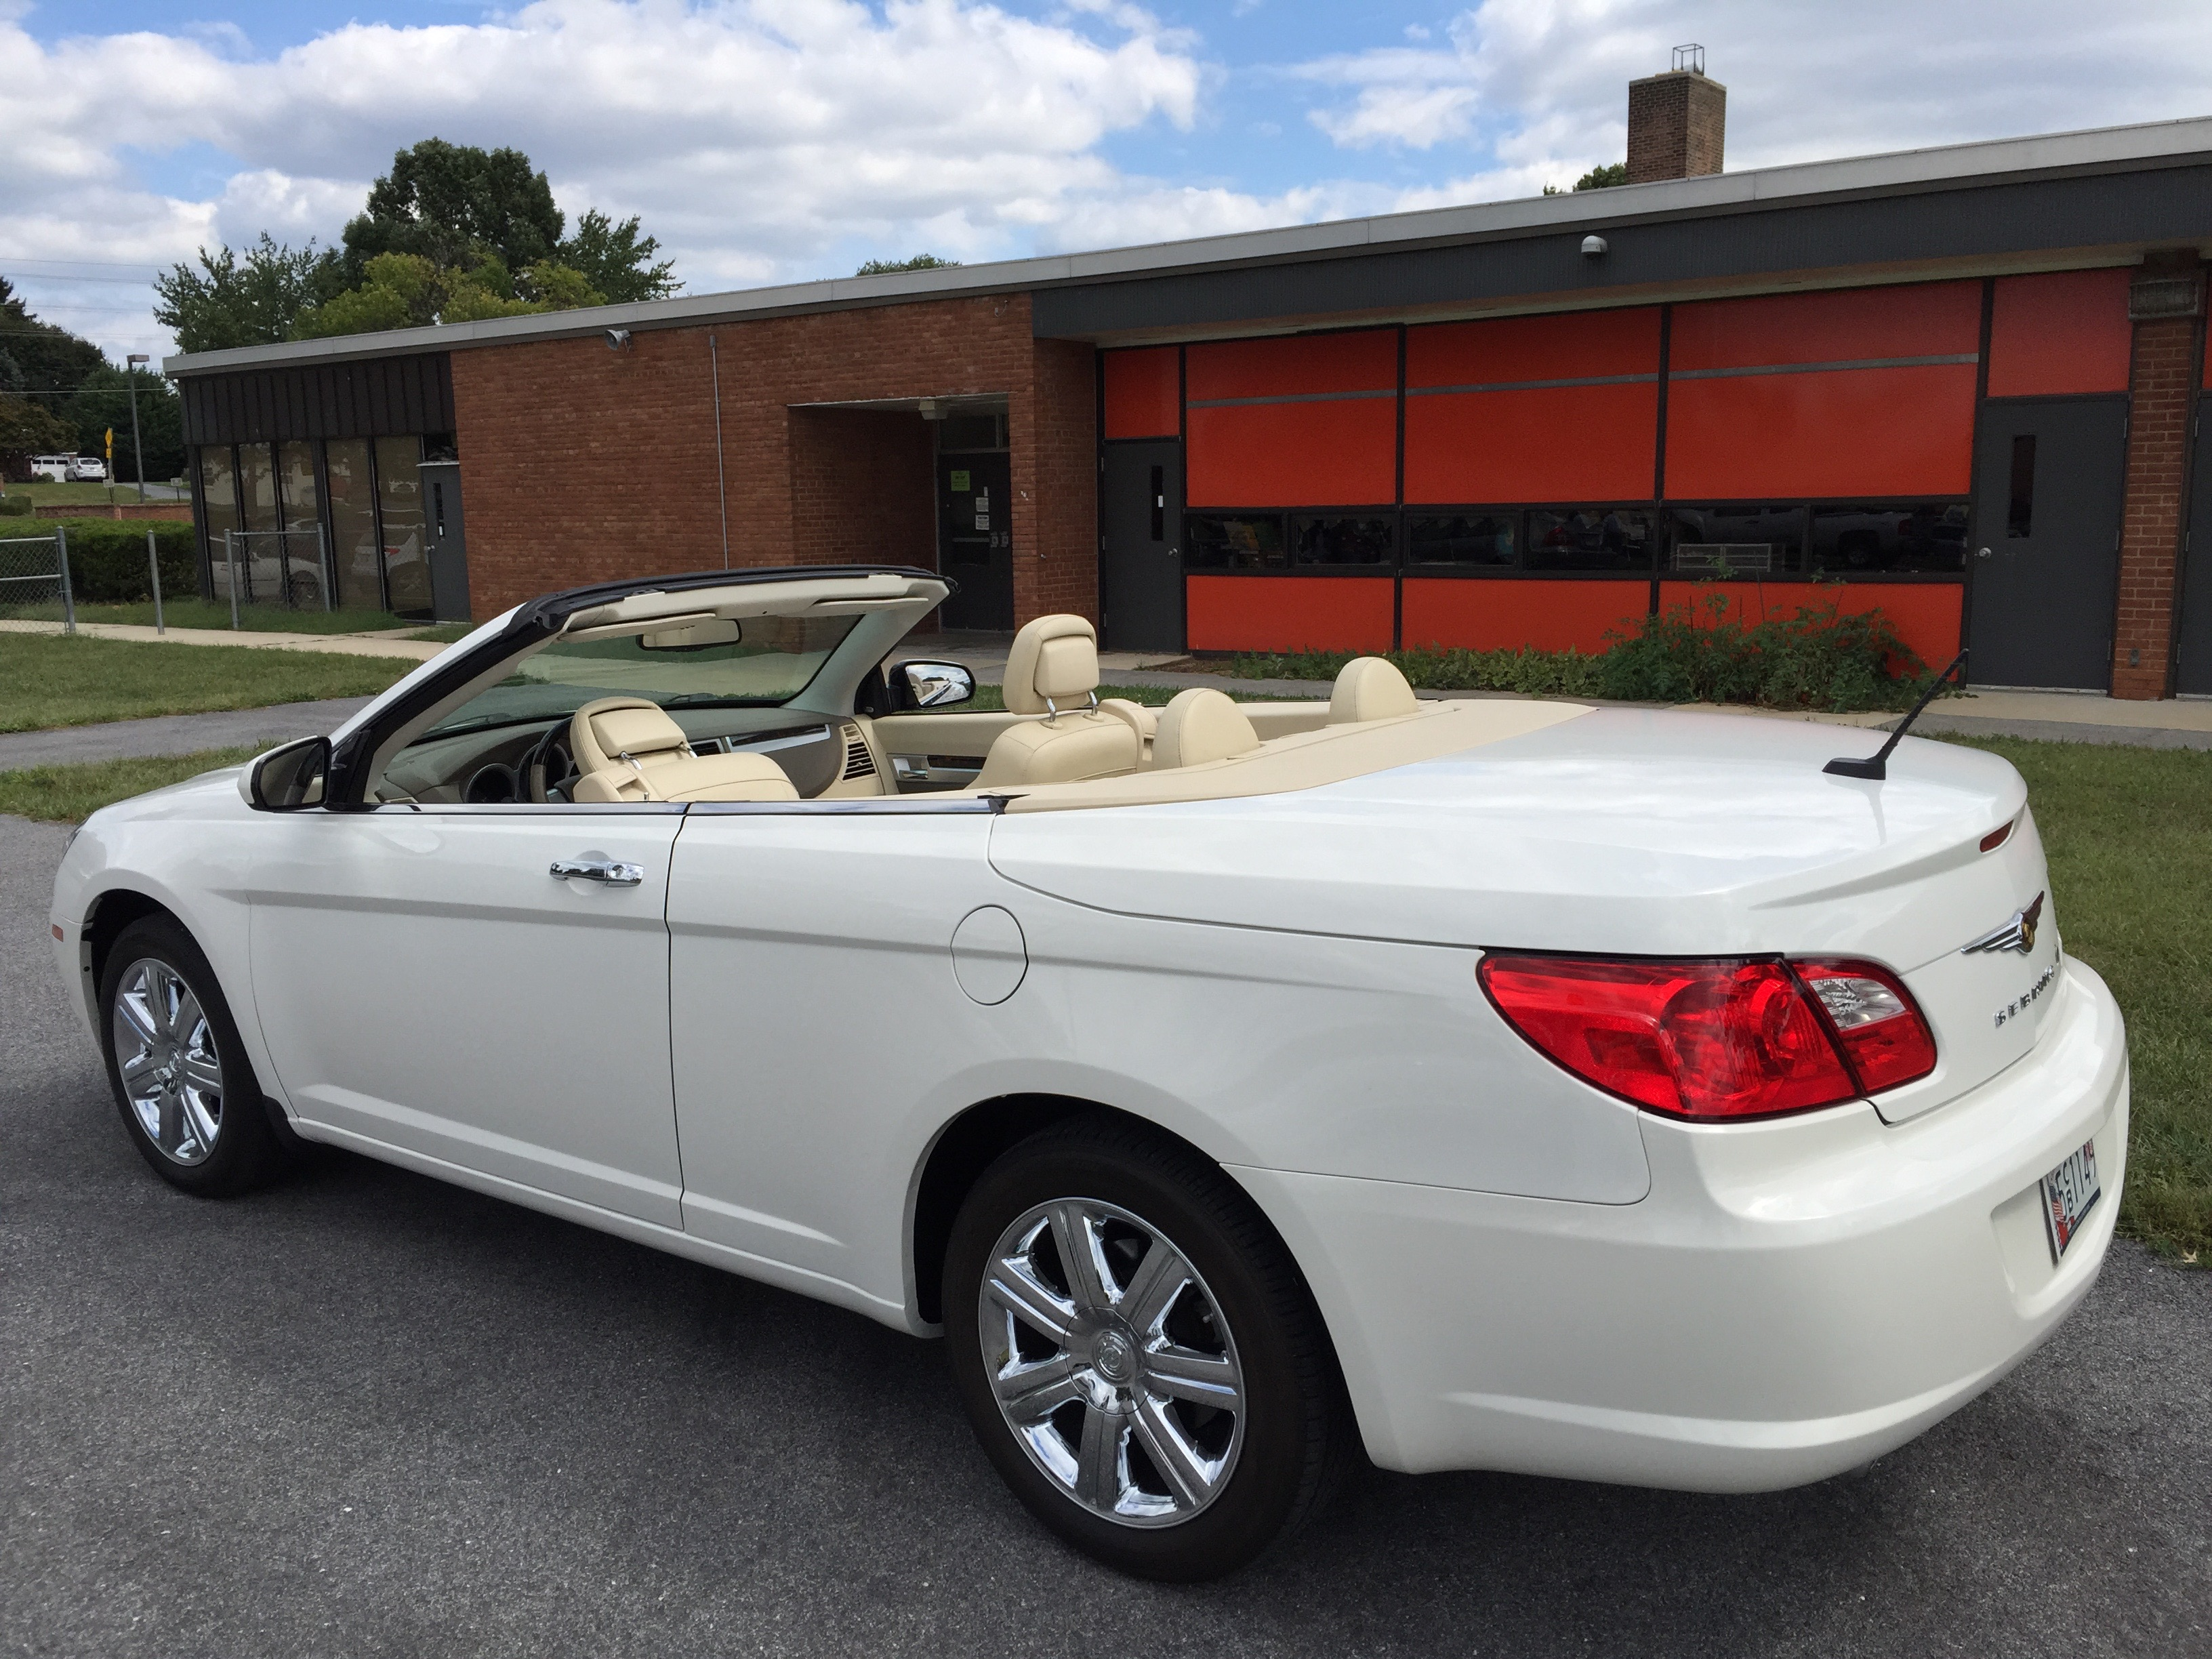 convertible limited speed hardtop chrysler sebring cars top sebrin